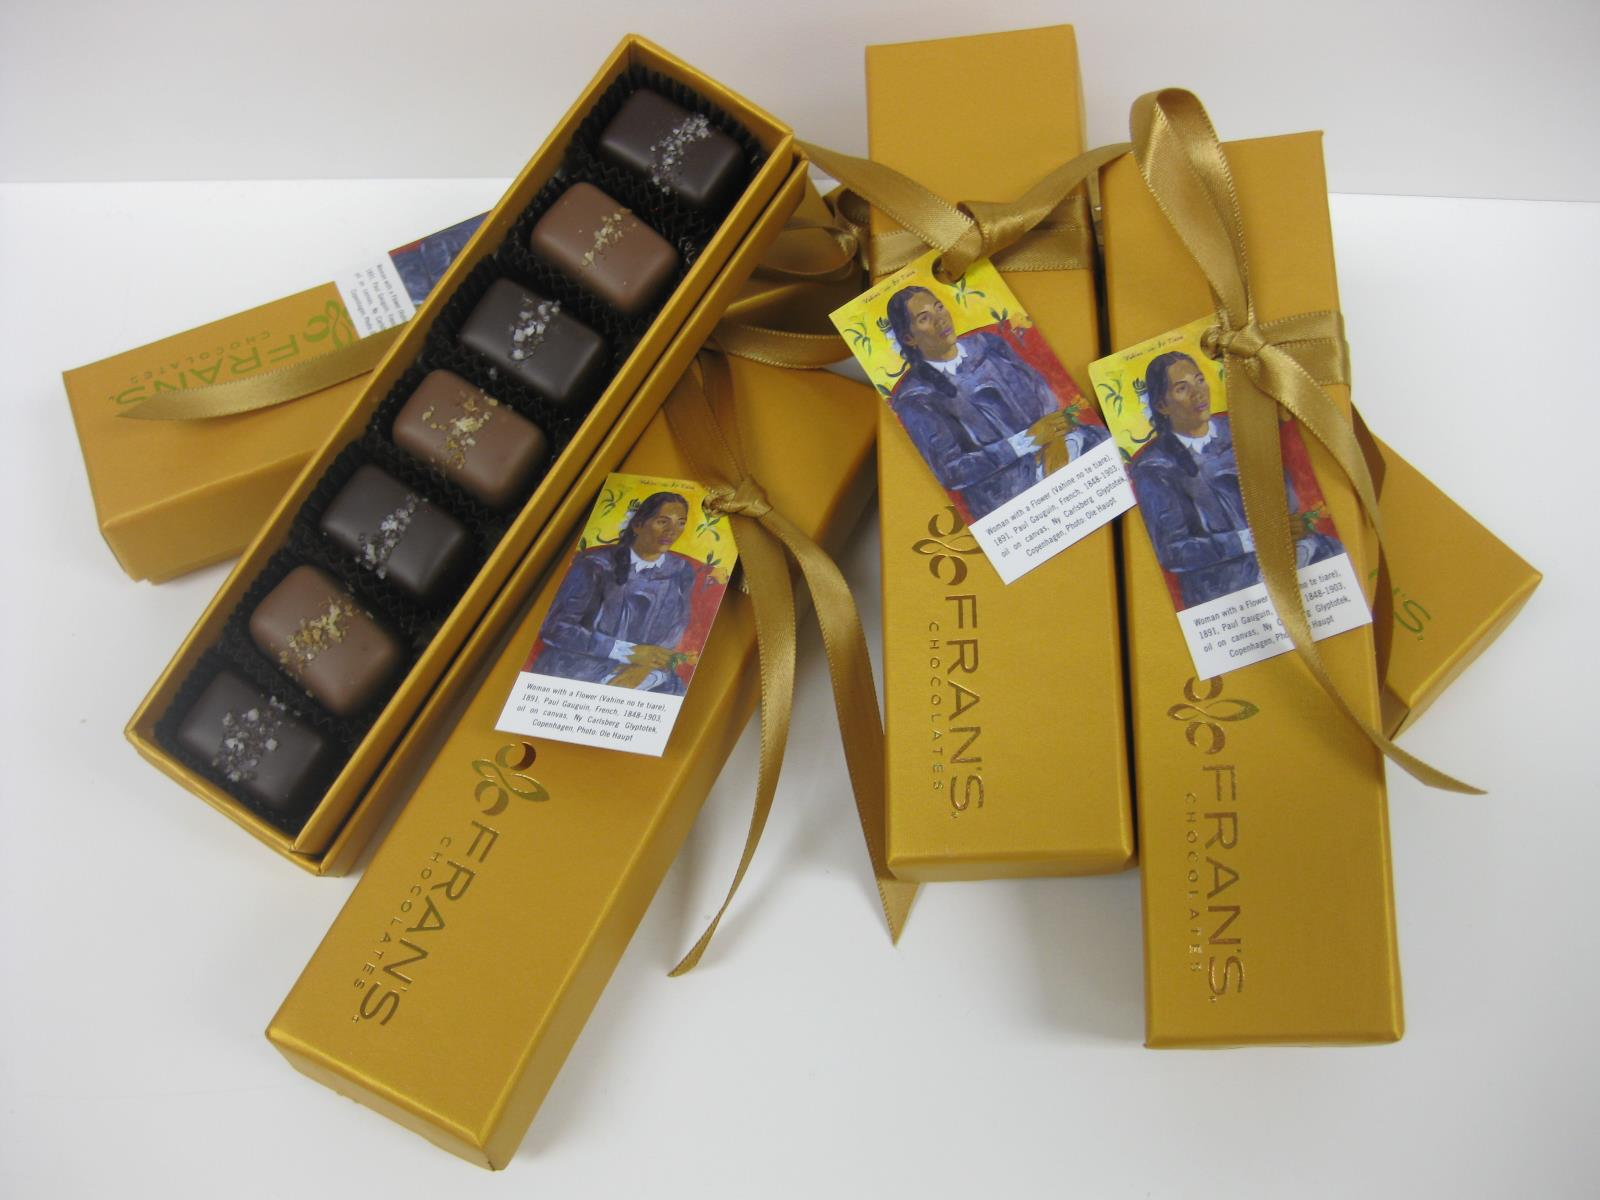 Gauguin Gray and Smoked Salt Caramels by Fran's Chocolates